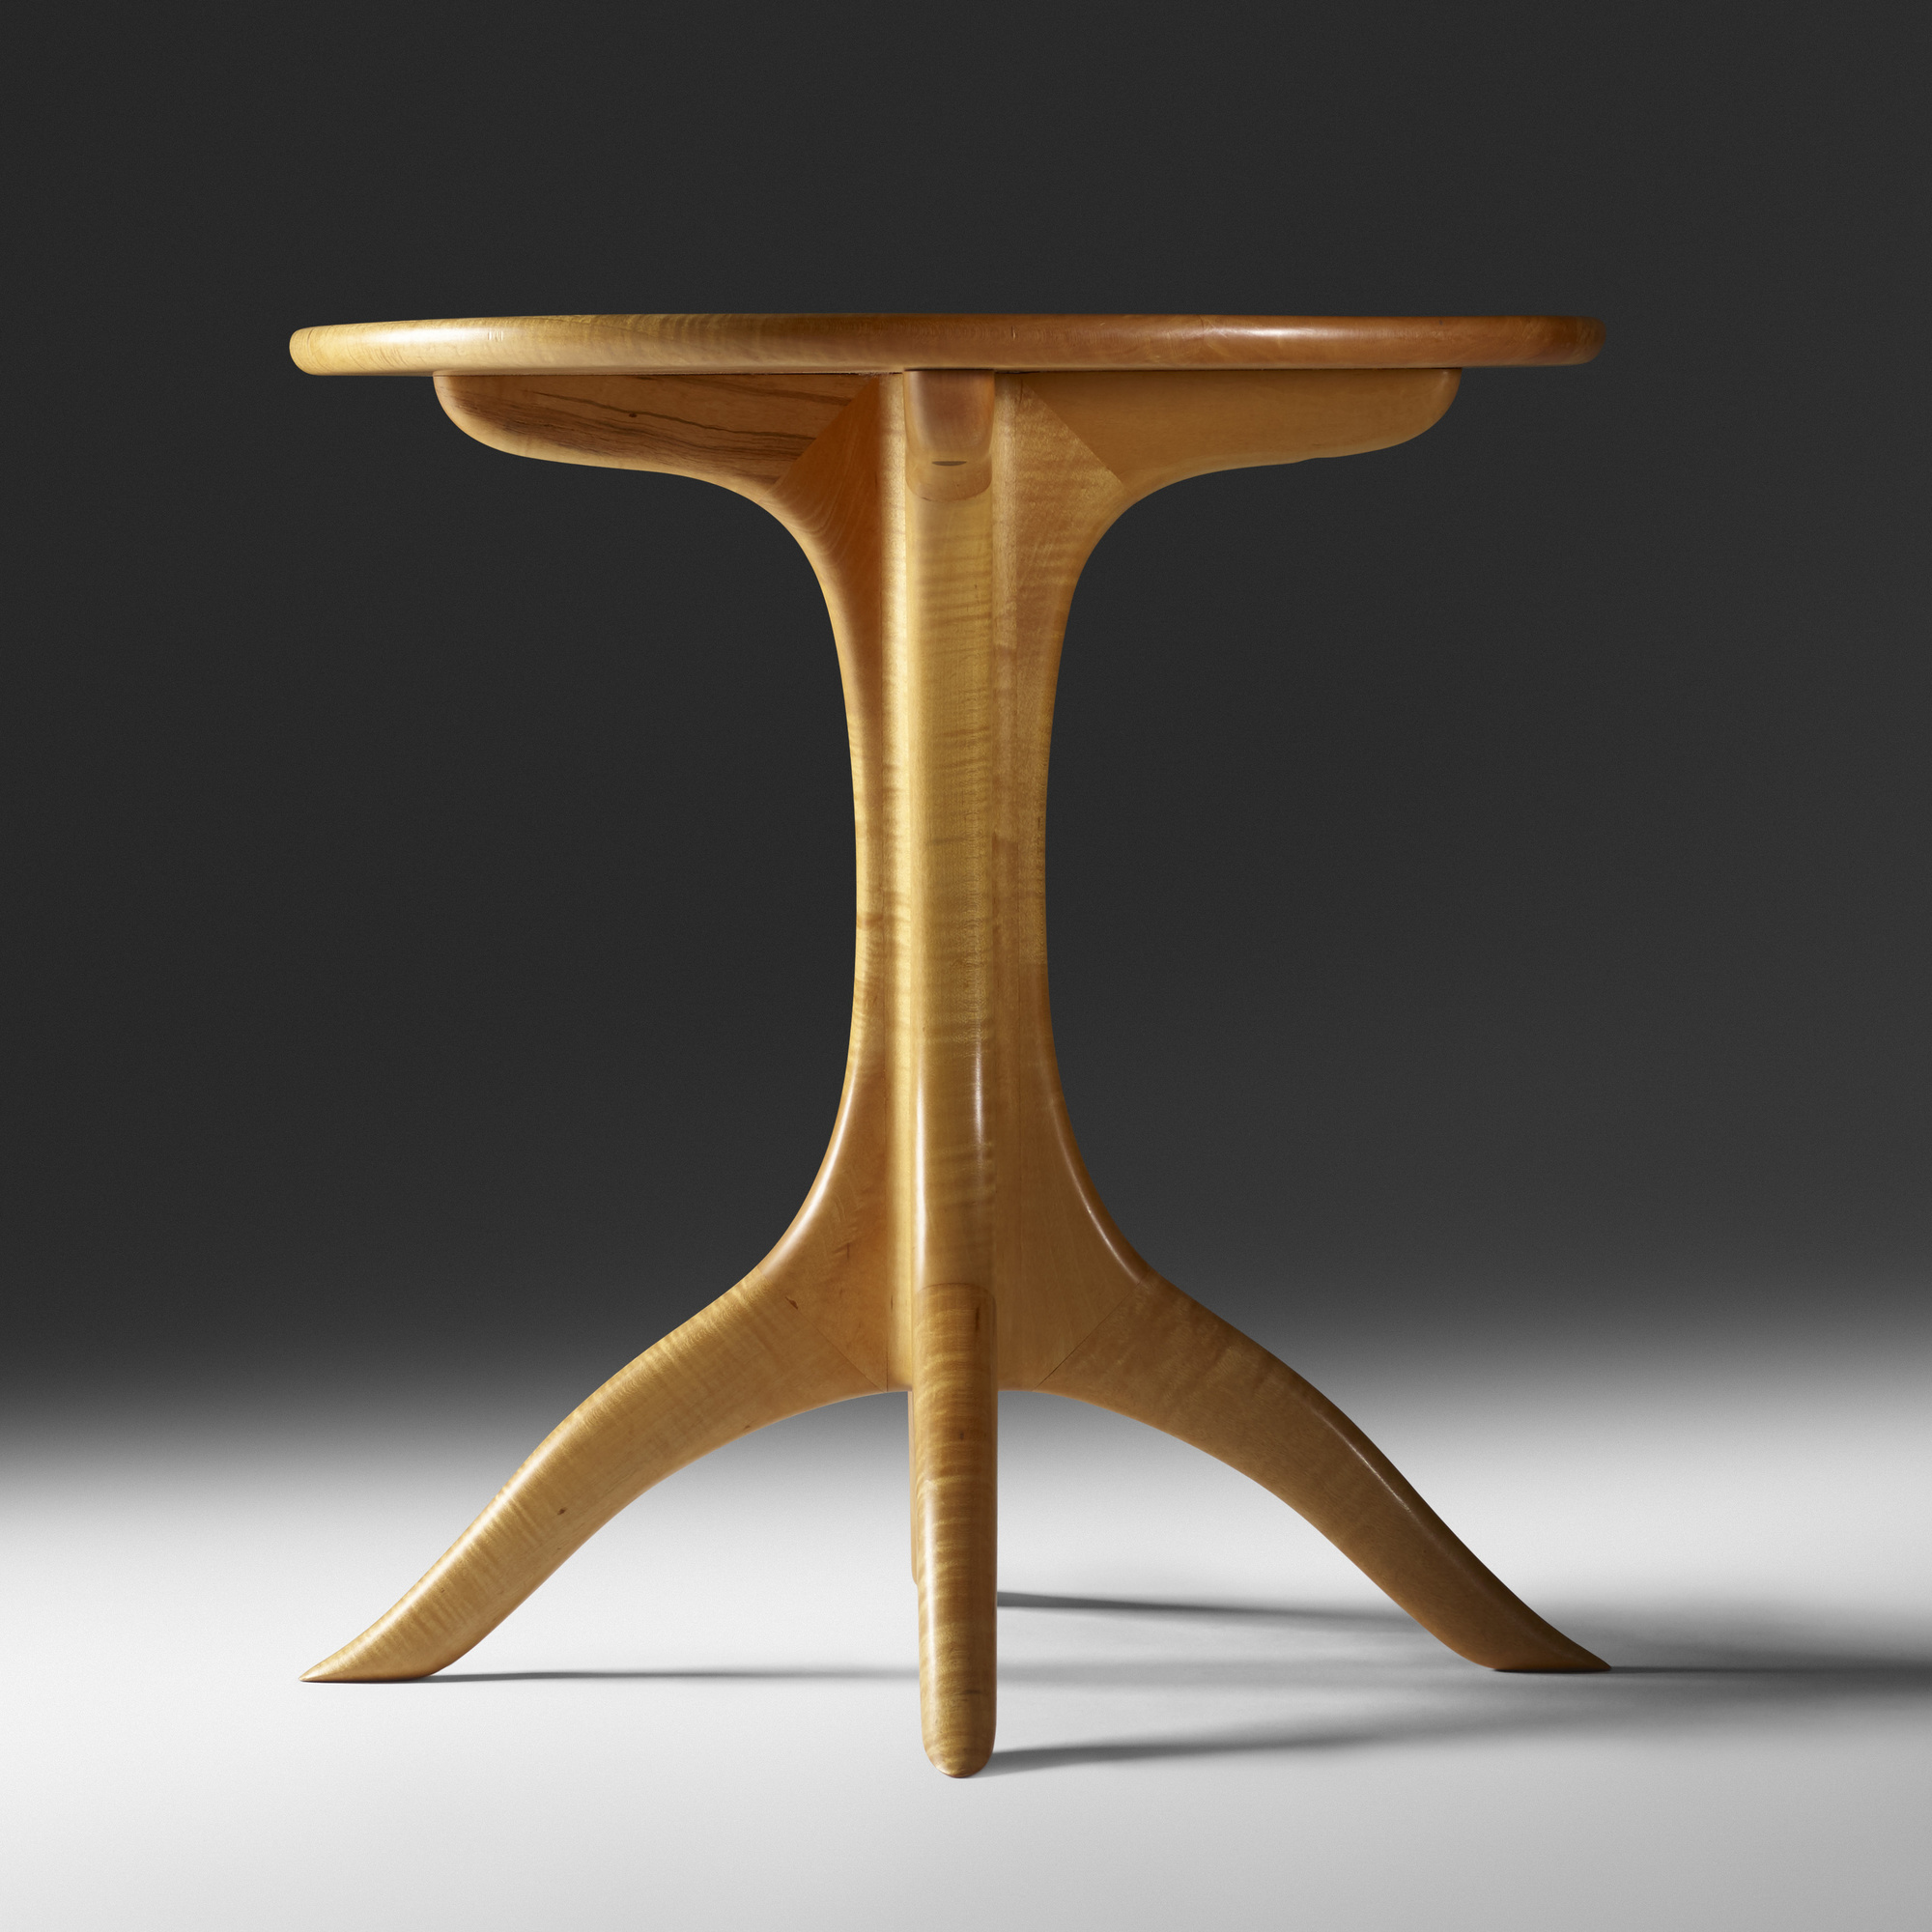 39: Sam Maloof / Pedestal table (2 of 4)